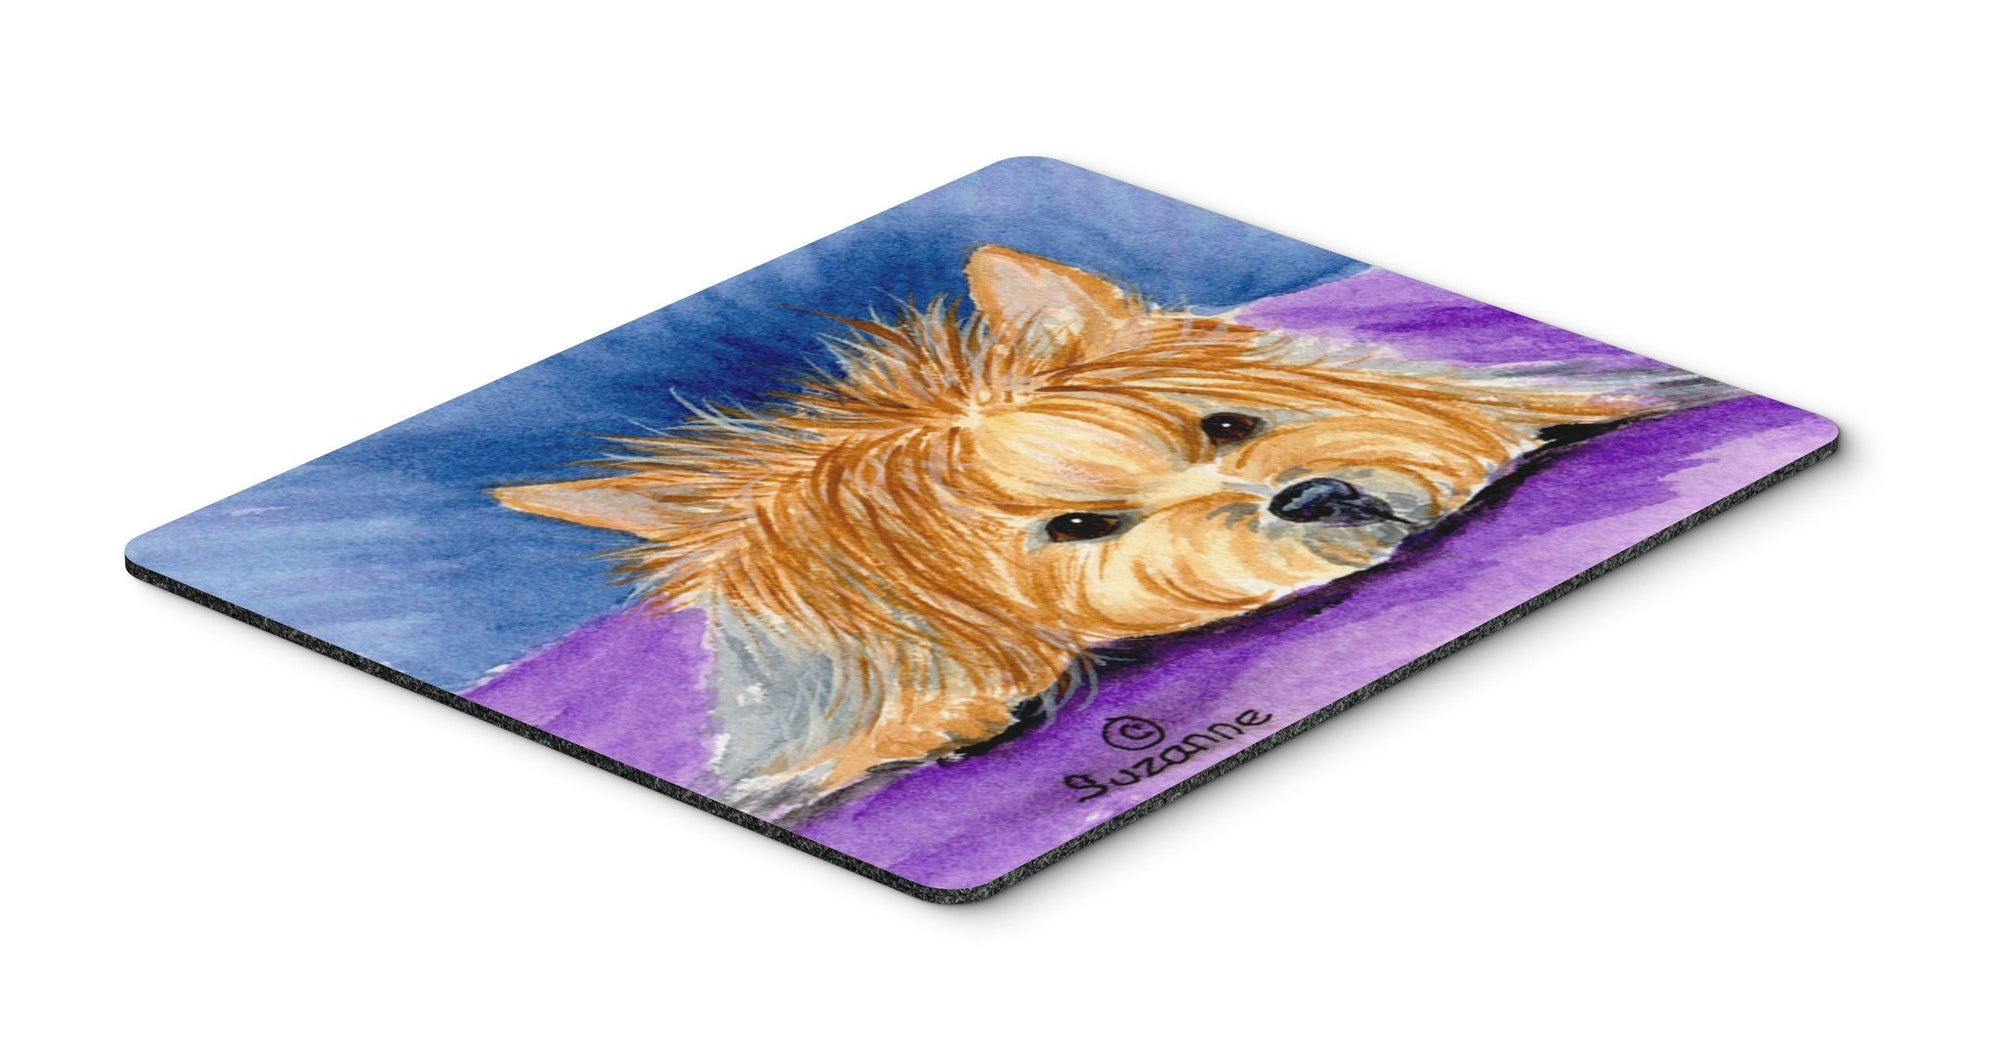 Yorkie Mouse pad, hot pad, or trivet by Caroline's Treasures